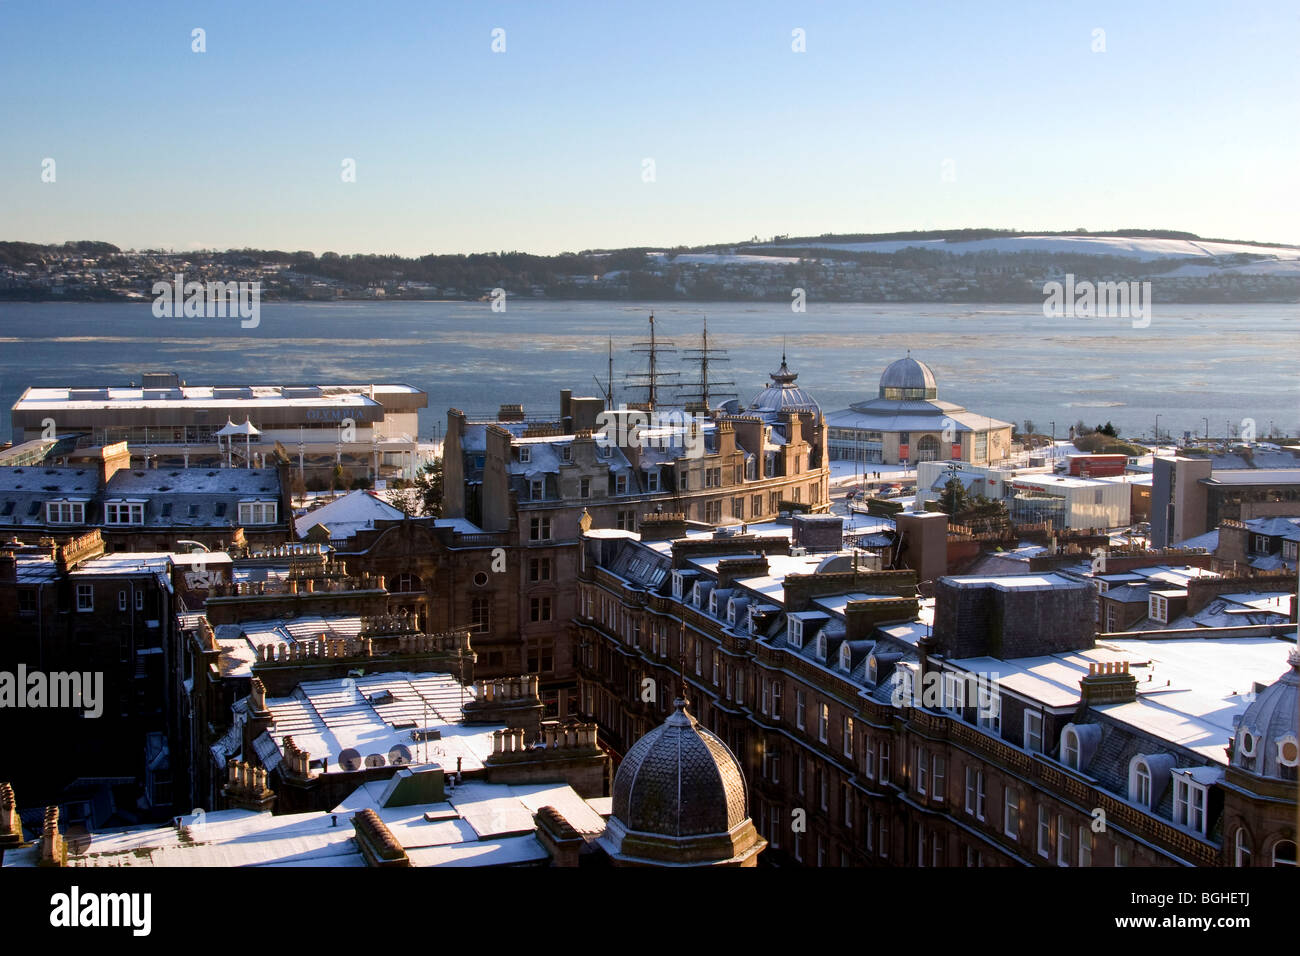 Aerial view of snow covered rooftops with a very rare scene of Ice and Snow covering the River Tay in Dundee,UK Stock Photo